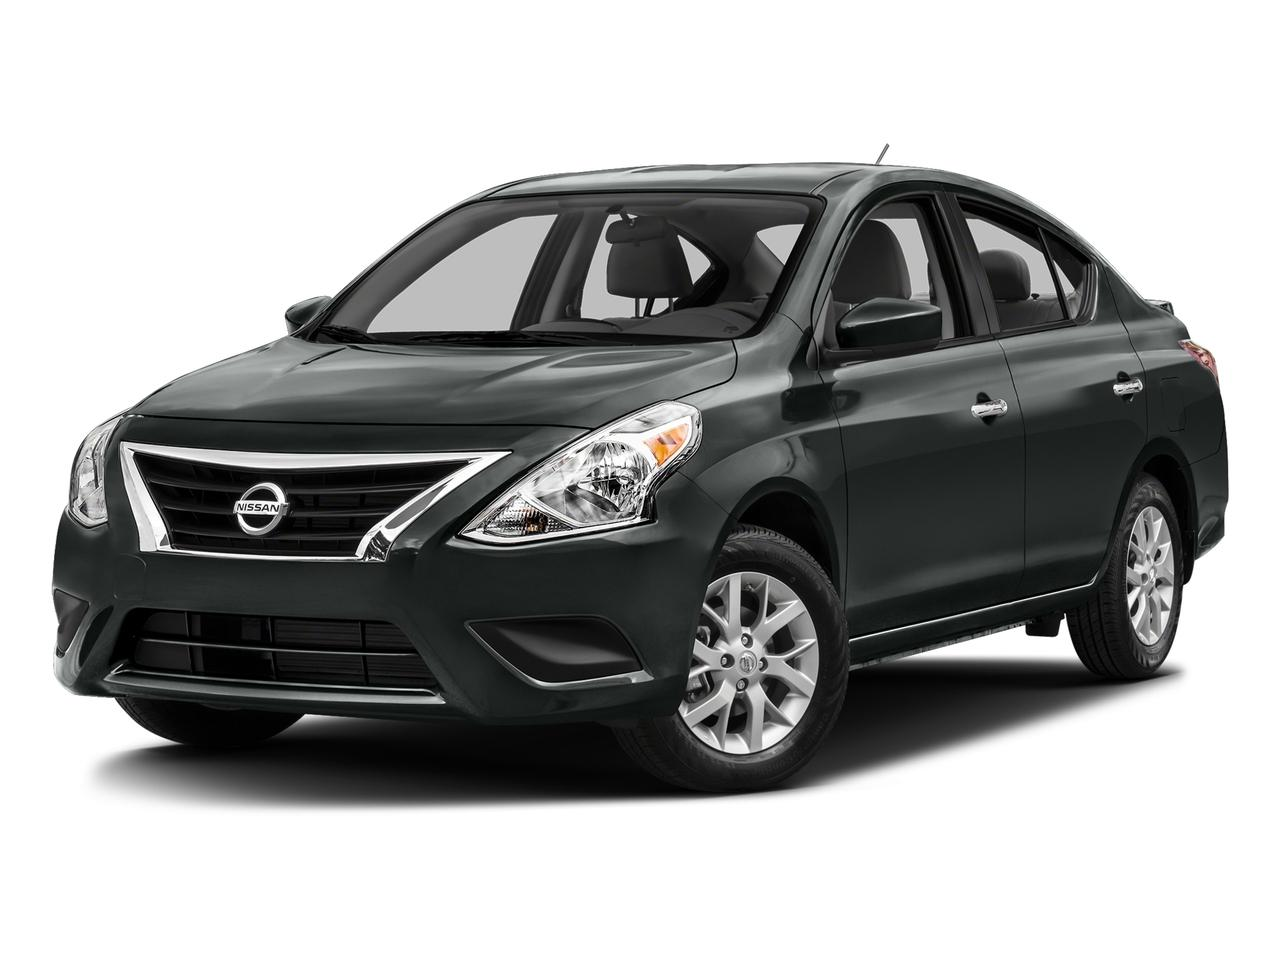 2016 Nissan Versa Vehicle Photo in Vincennes, IN 47591